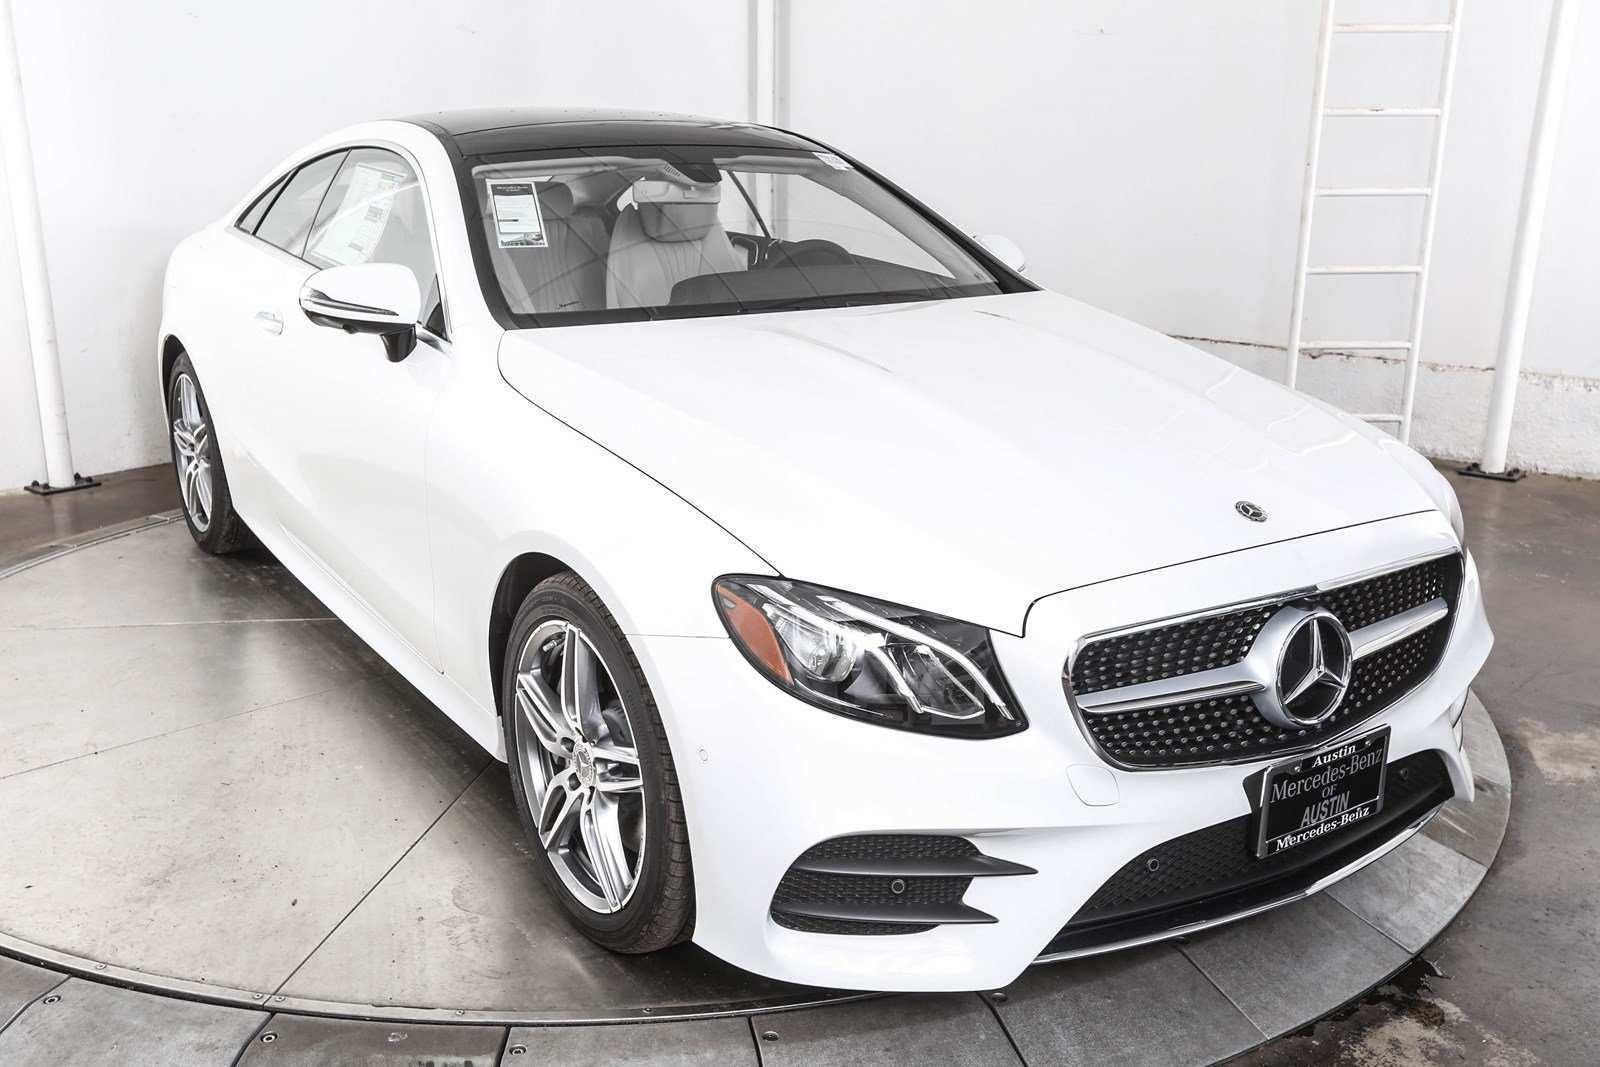 59 All New Mercedes E450 Coupe 2019 Images